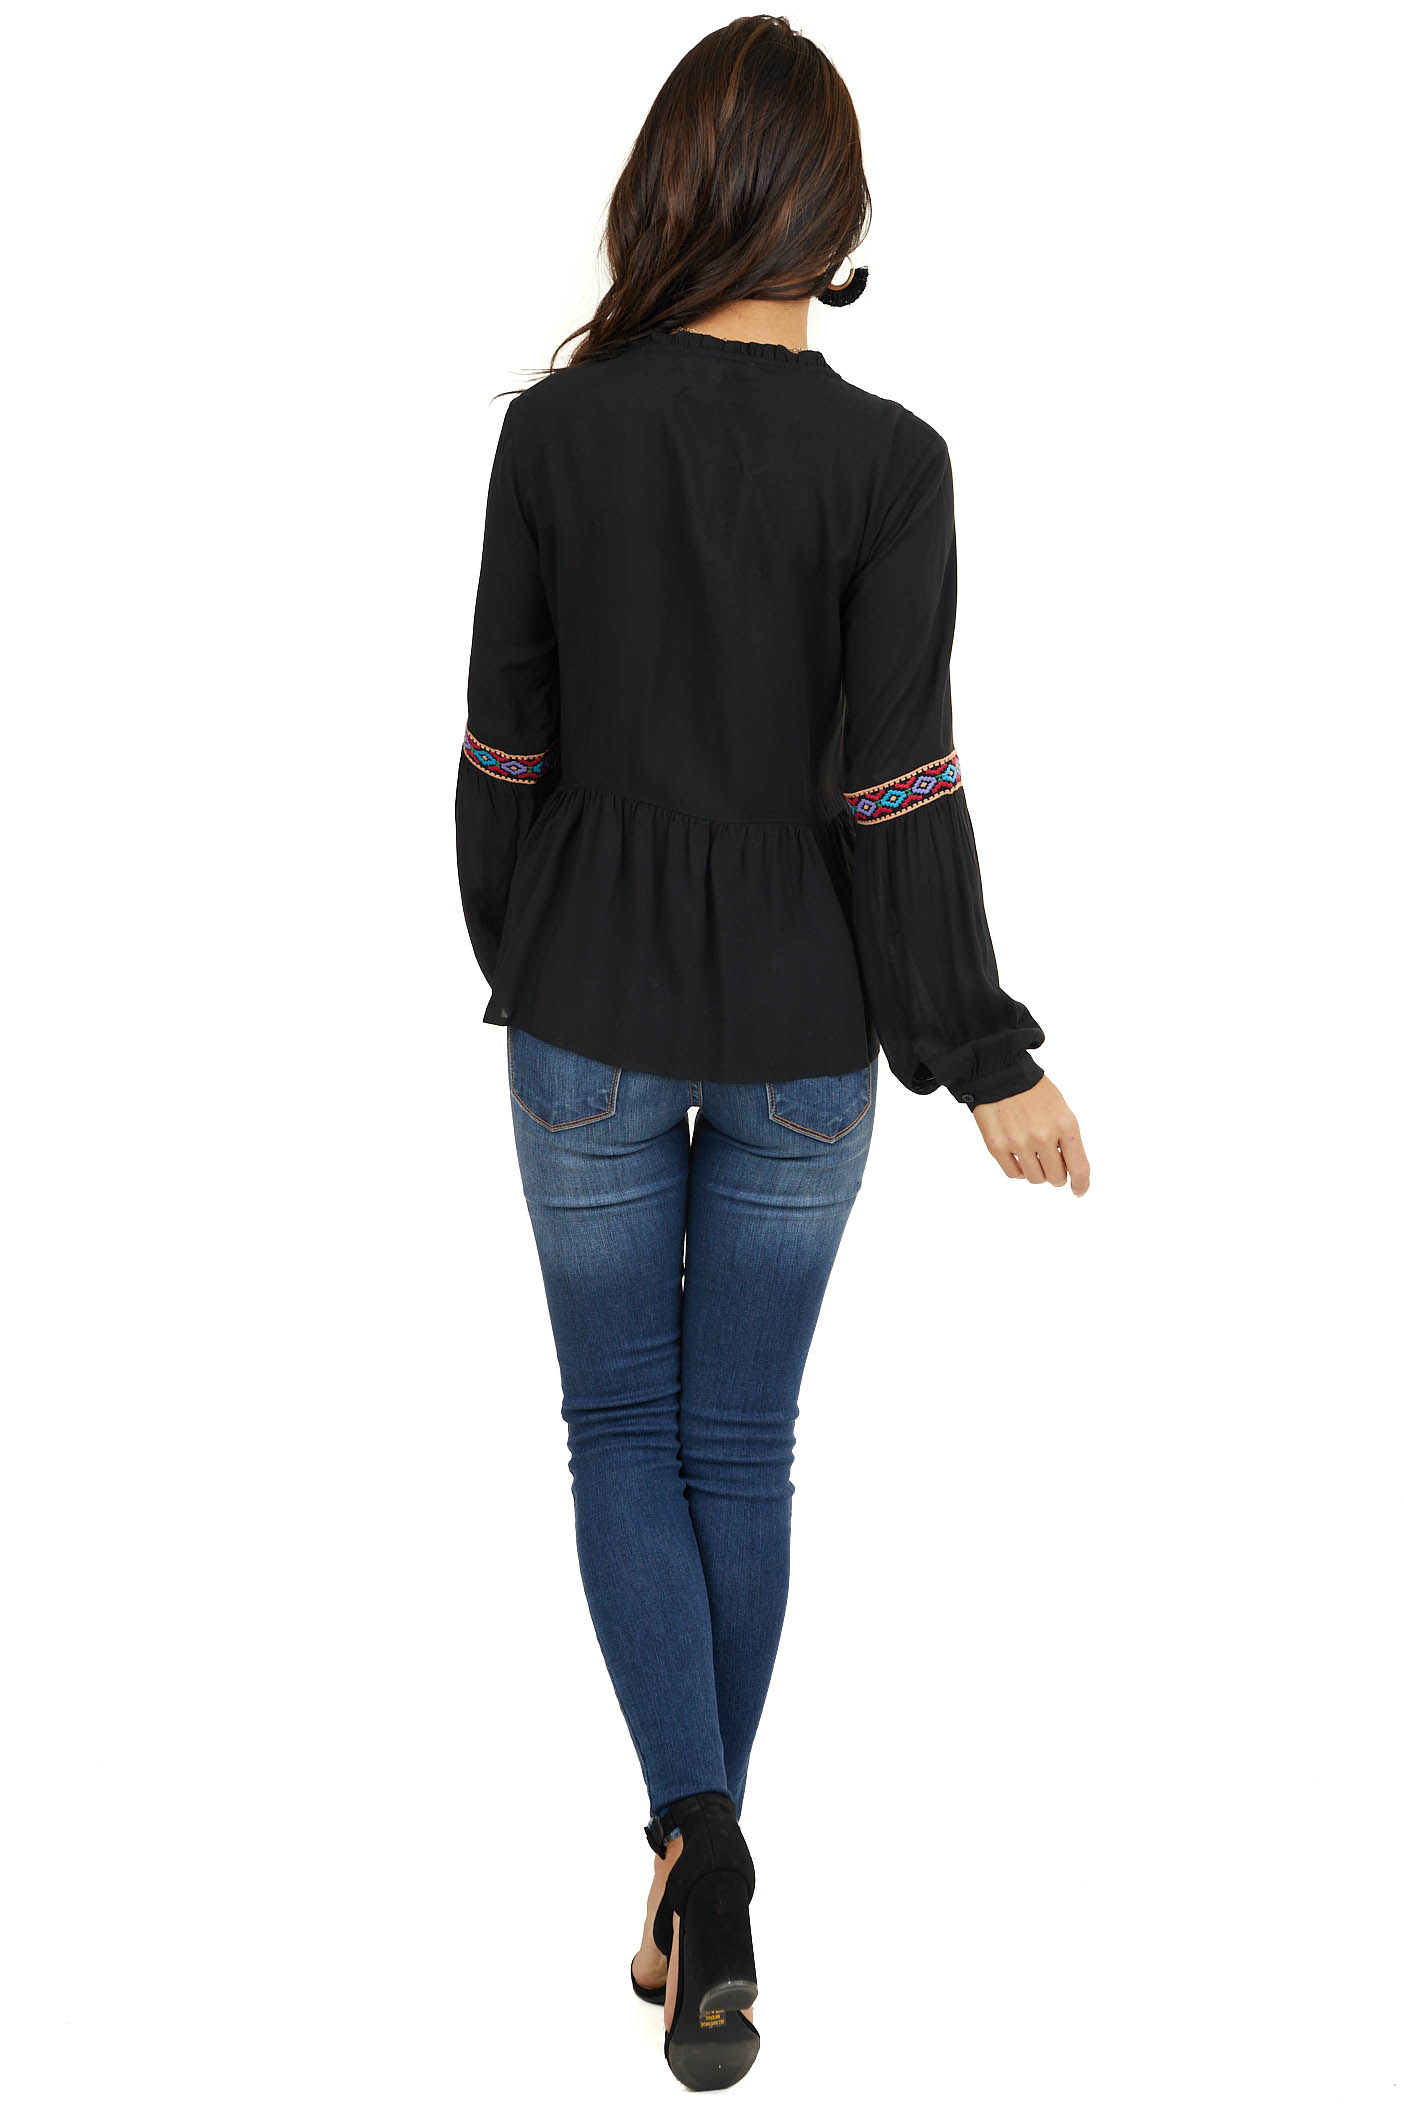 Black Long Sleeve Drop Waist Blouse with Embroidery Details